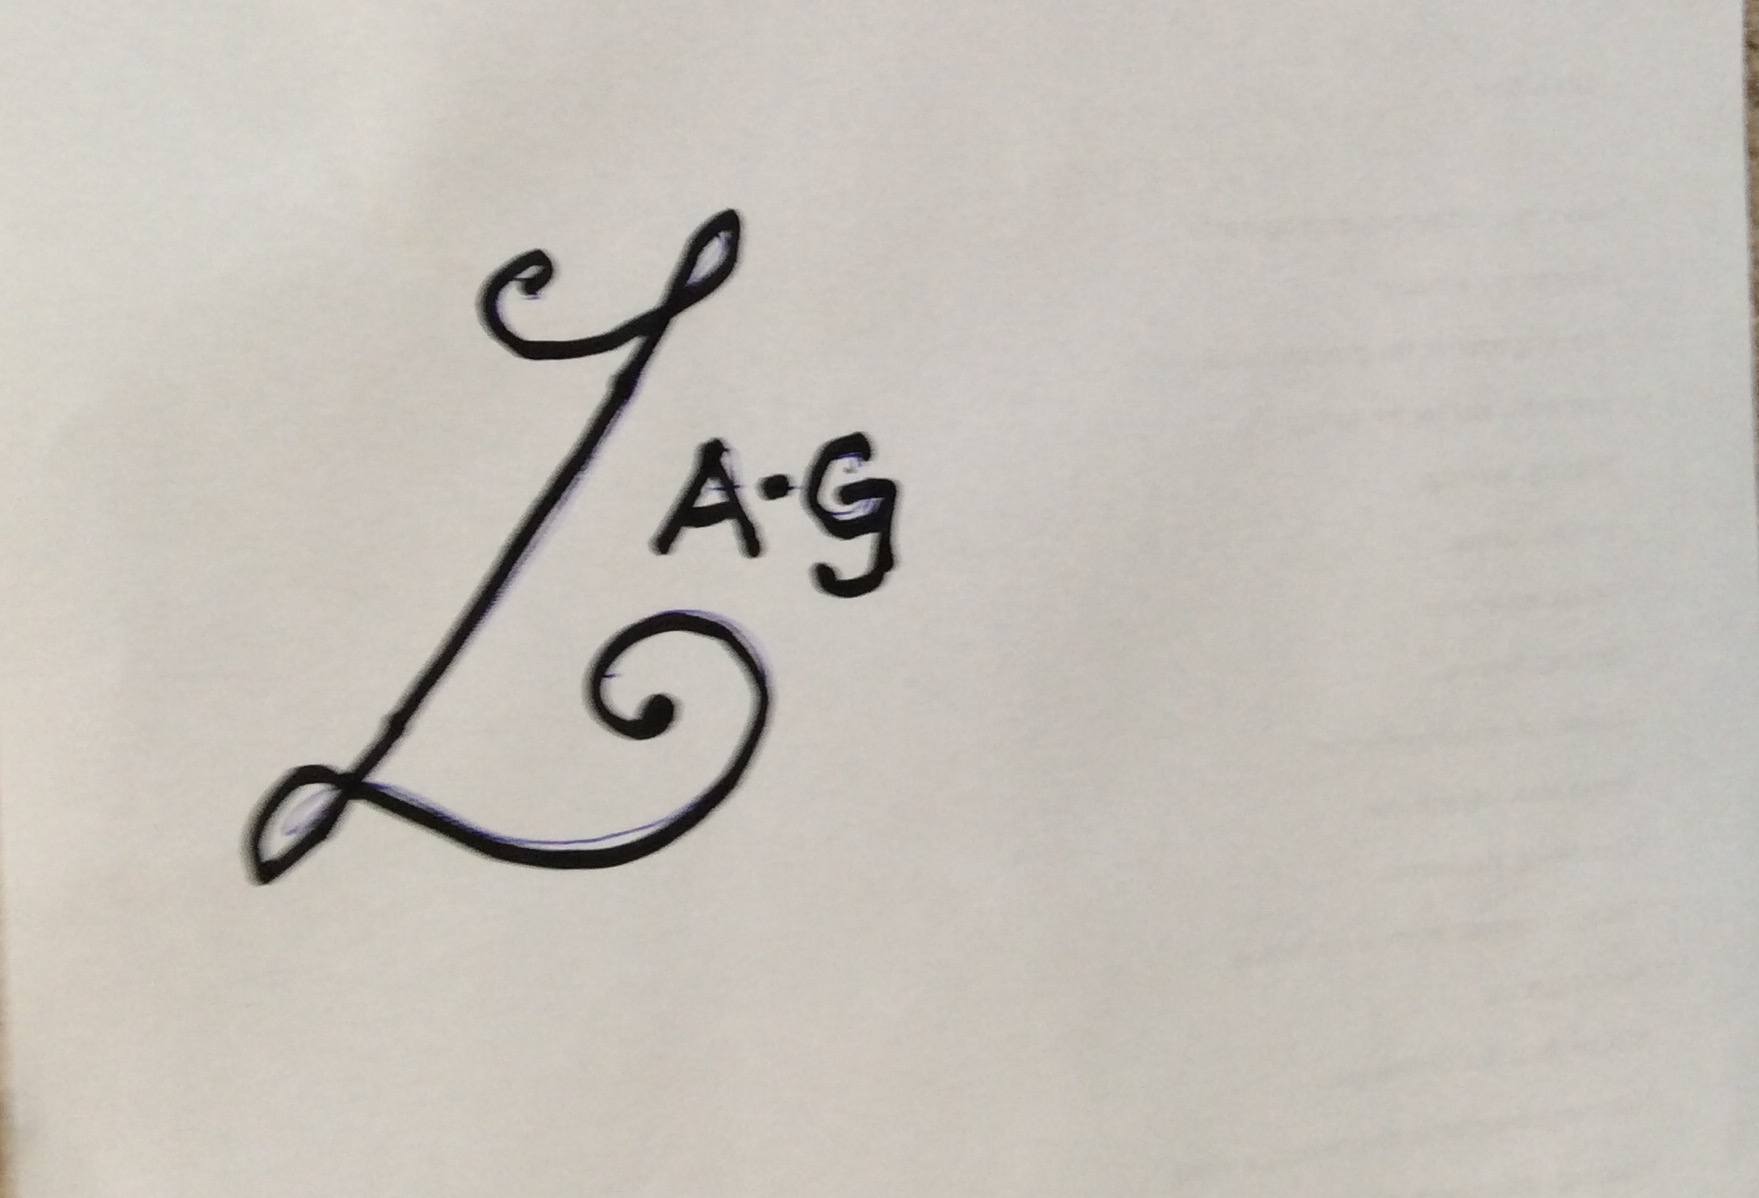 zoe ainsworth-grigg Signature